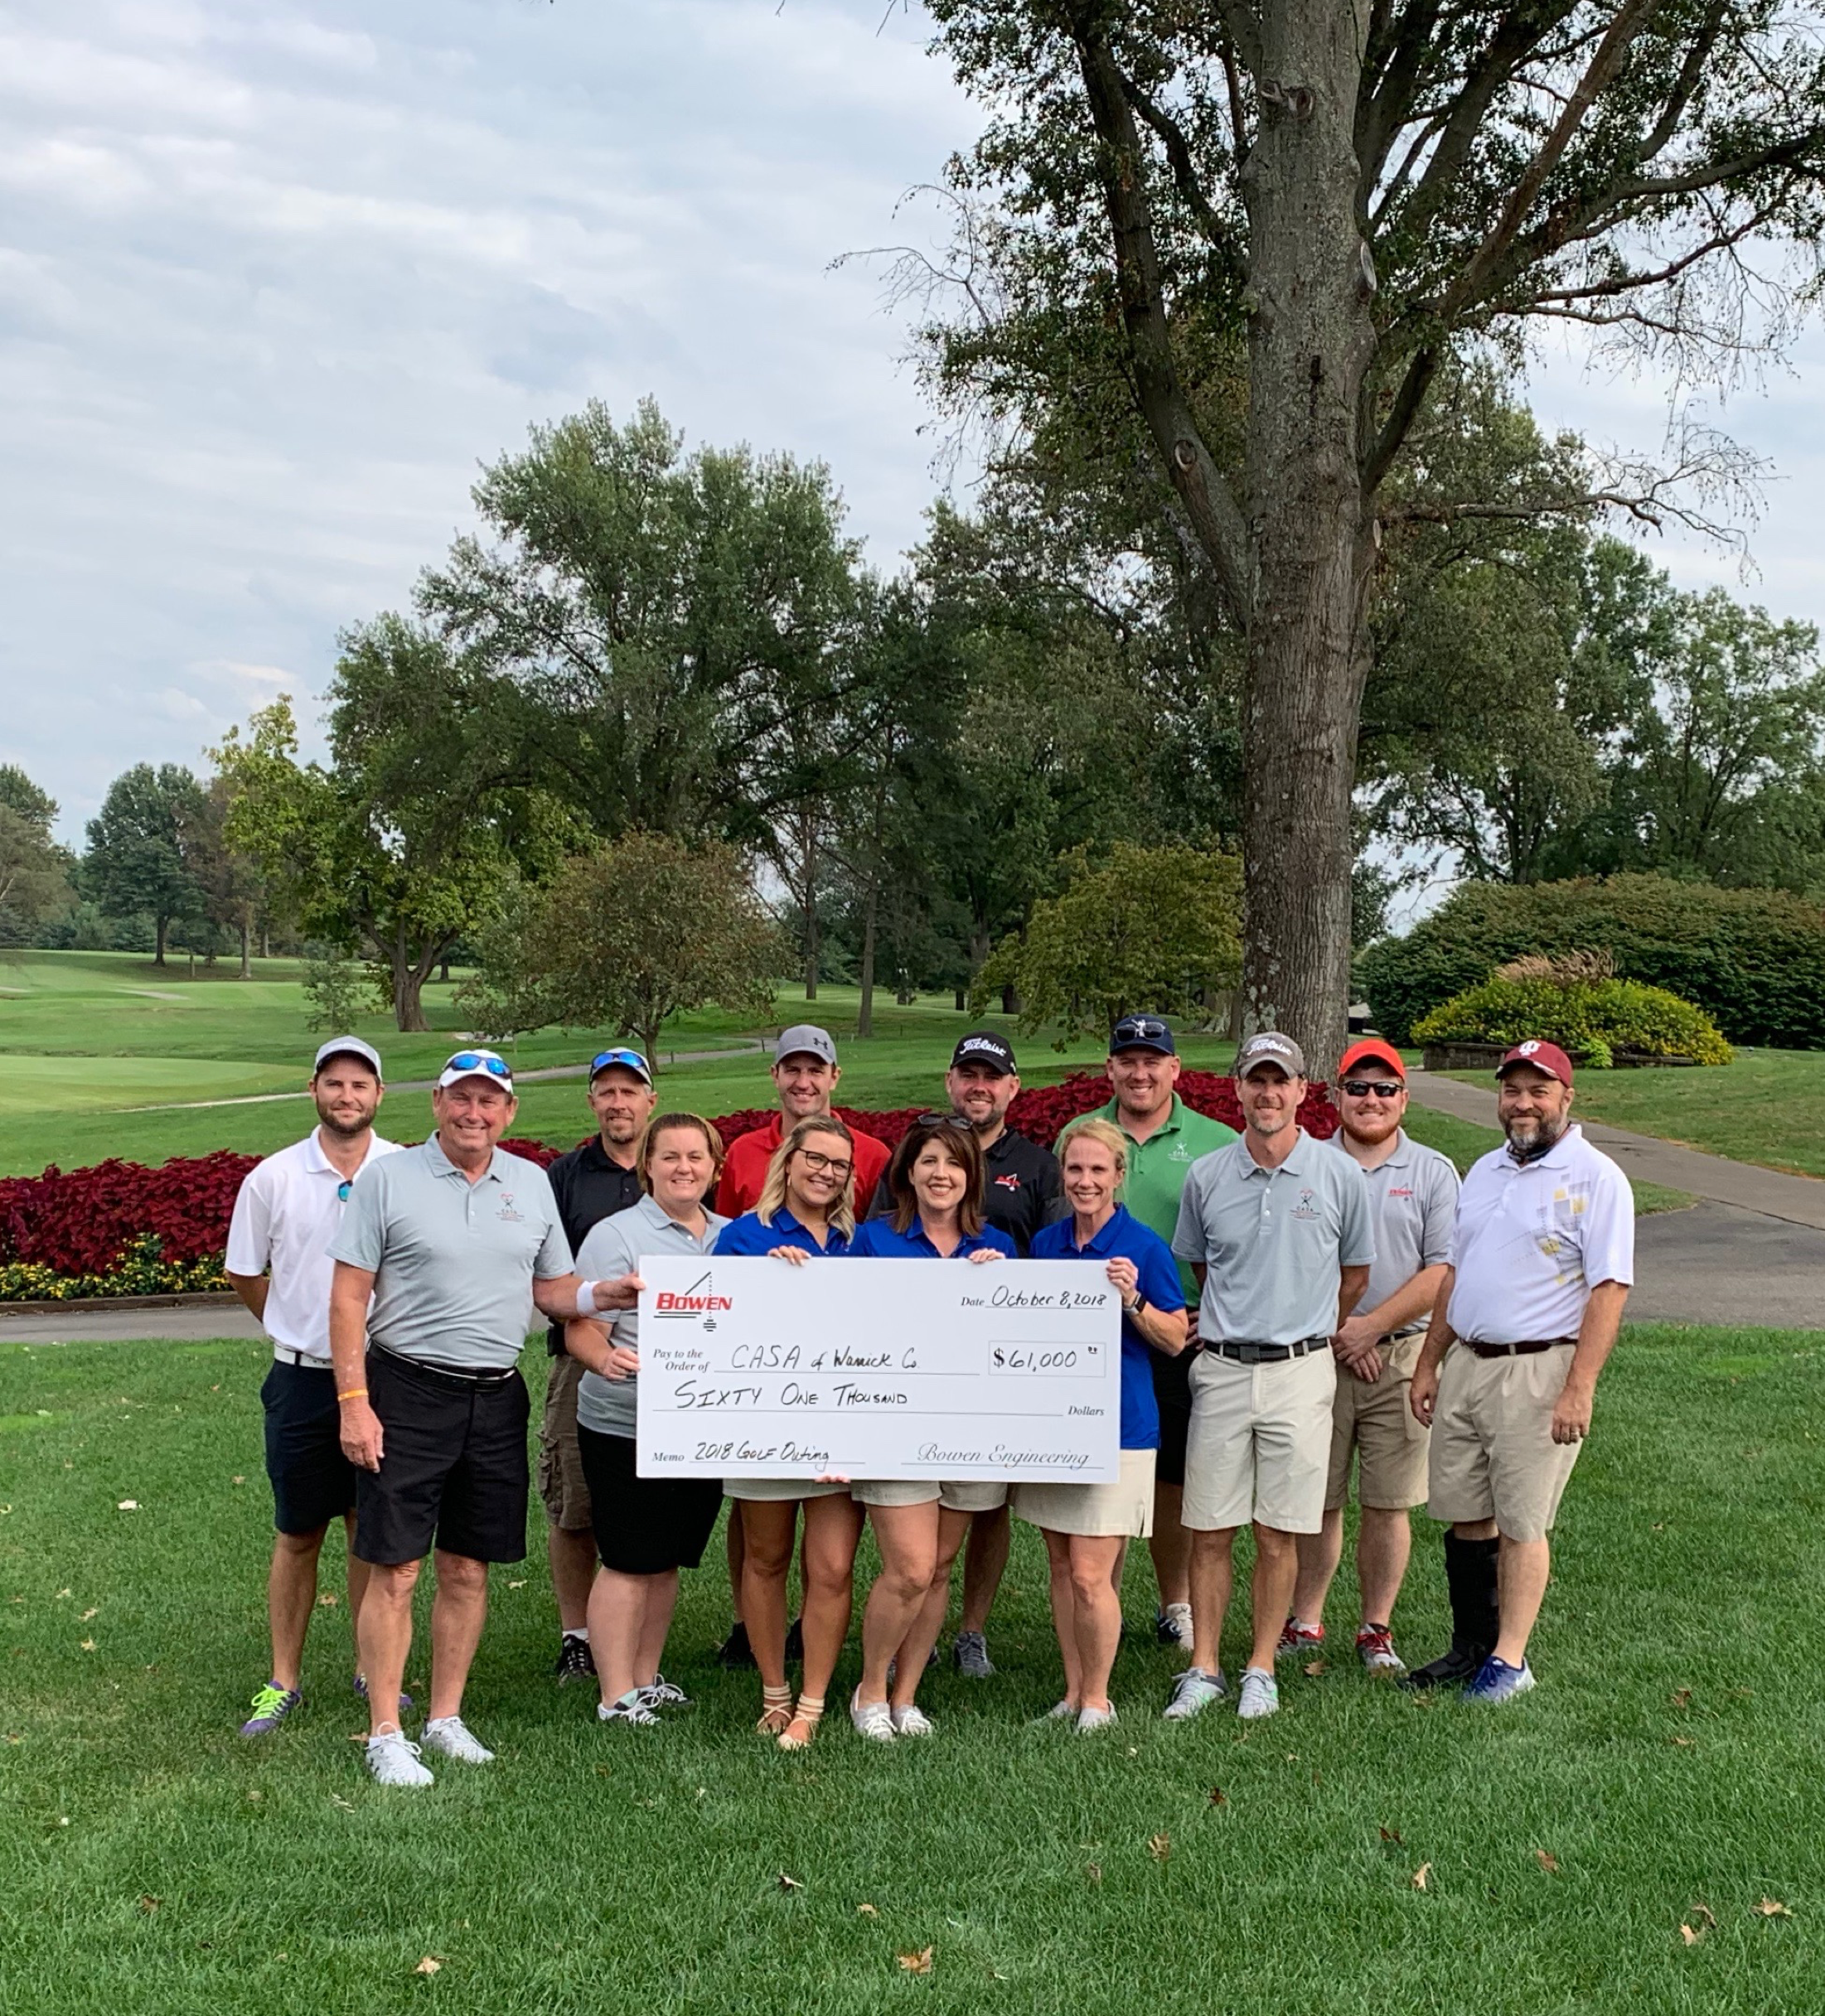 Bowen raised $61,000 in a golf tournament for CASA (Court Appointed Special Advocates) an organization that serves neglected and abused children.